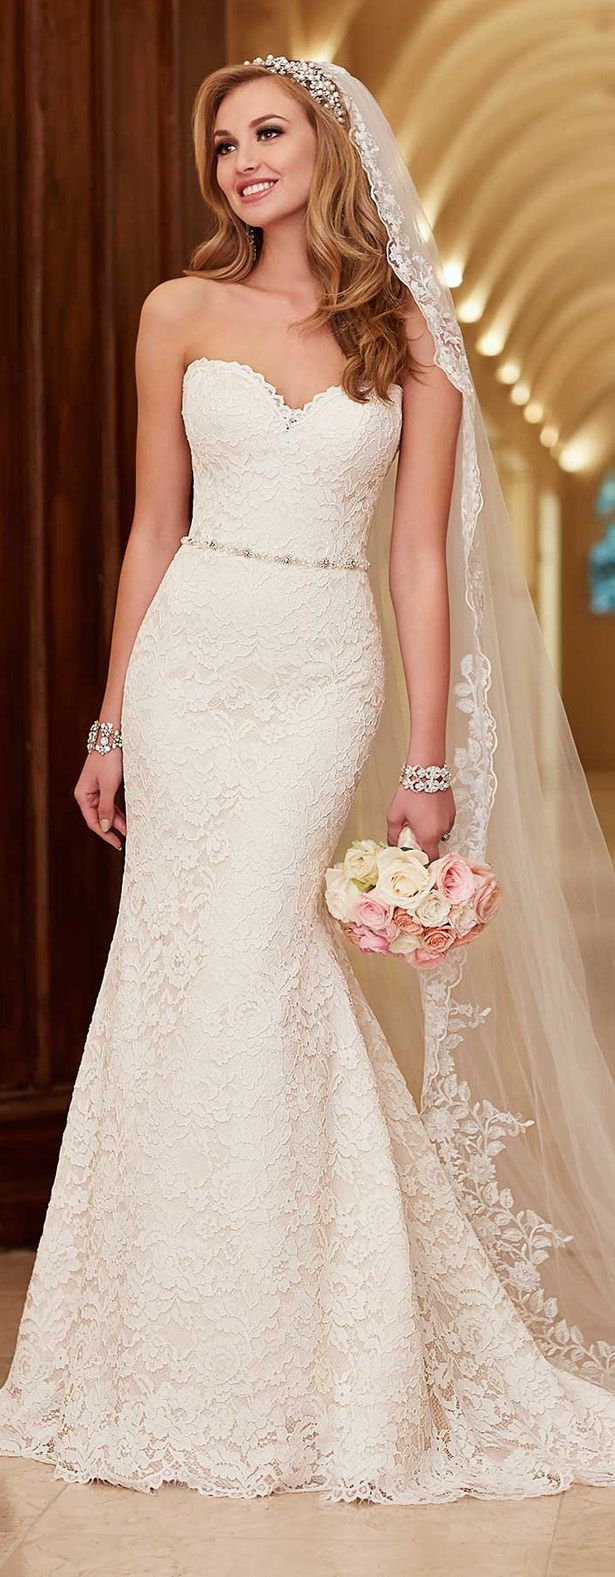 Wedding-Dresses 22